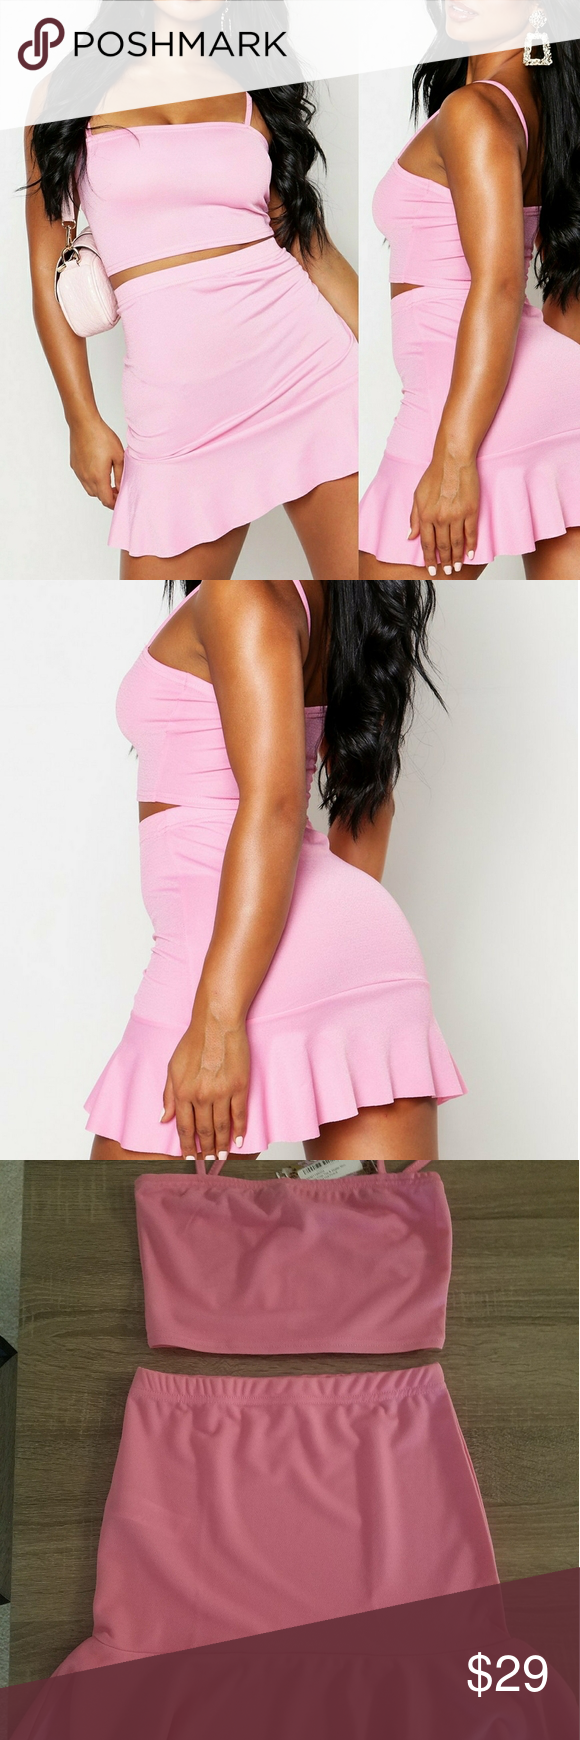 Pink candy 🎀 pink skirt set NEW!!!! Totally Cute PINK skirt set  BARBIE VIBES😍😍☺ PRETTY IN PINK😍 👉 perfect for VEGAS 👉perfect for party's 💎 You get :  Pink crop top and pink mini skirt! #90svibes Size: Us 4 . New with tags💗 #summer #party #vacation ❤️Form fitting style❤️ curve hugging ❤️ A must have for any